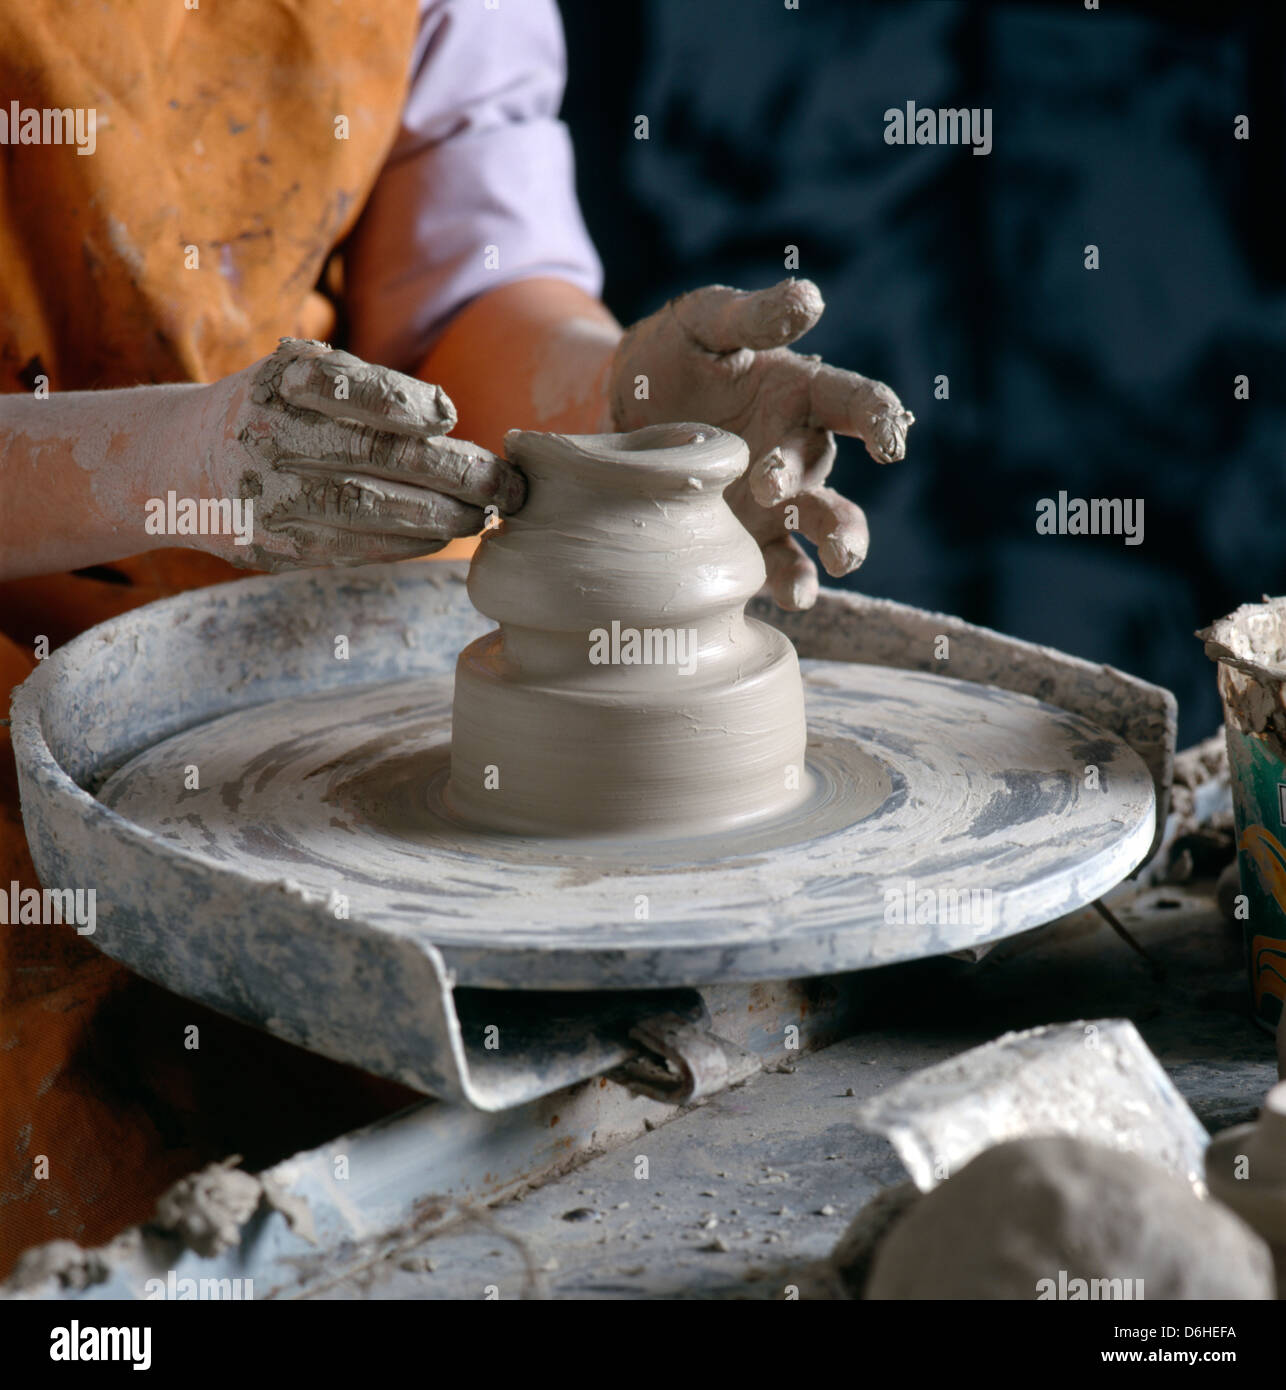 Close up of teenage girl's hands shaping pottery on a pottery wheel in a high school art class. - Stock Image